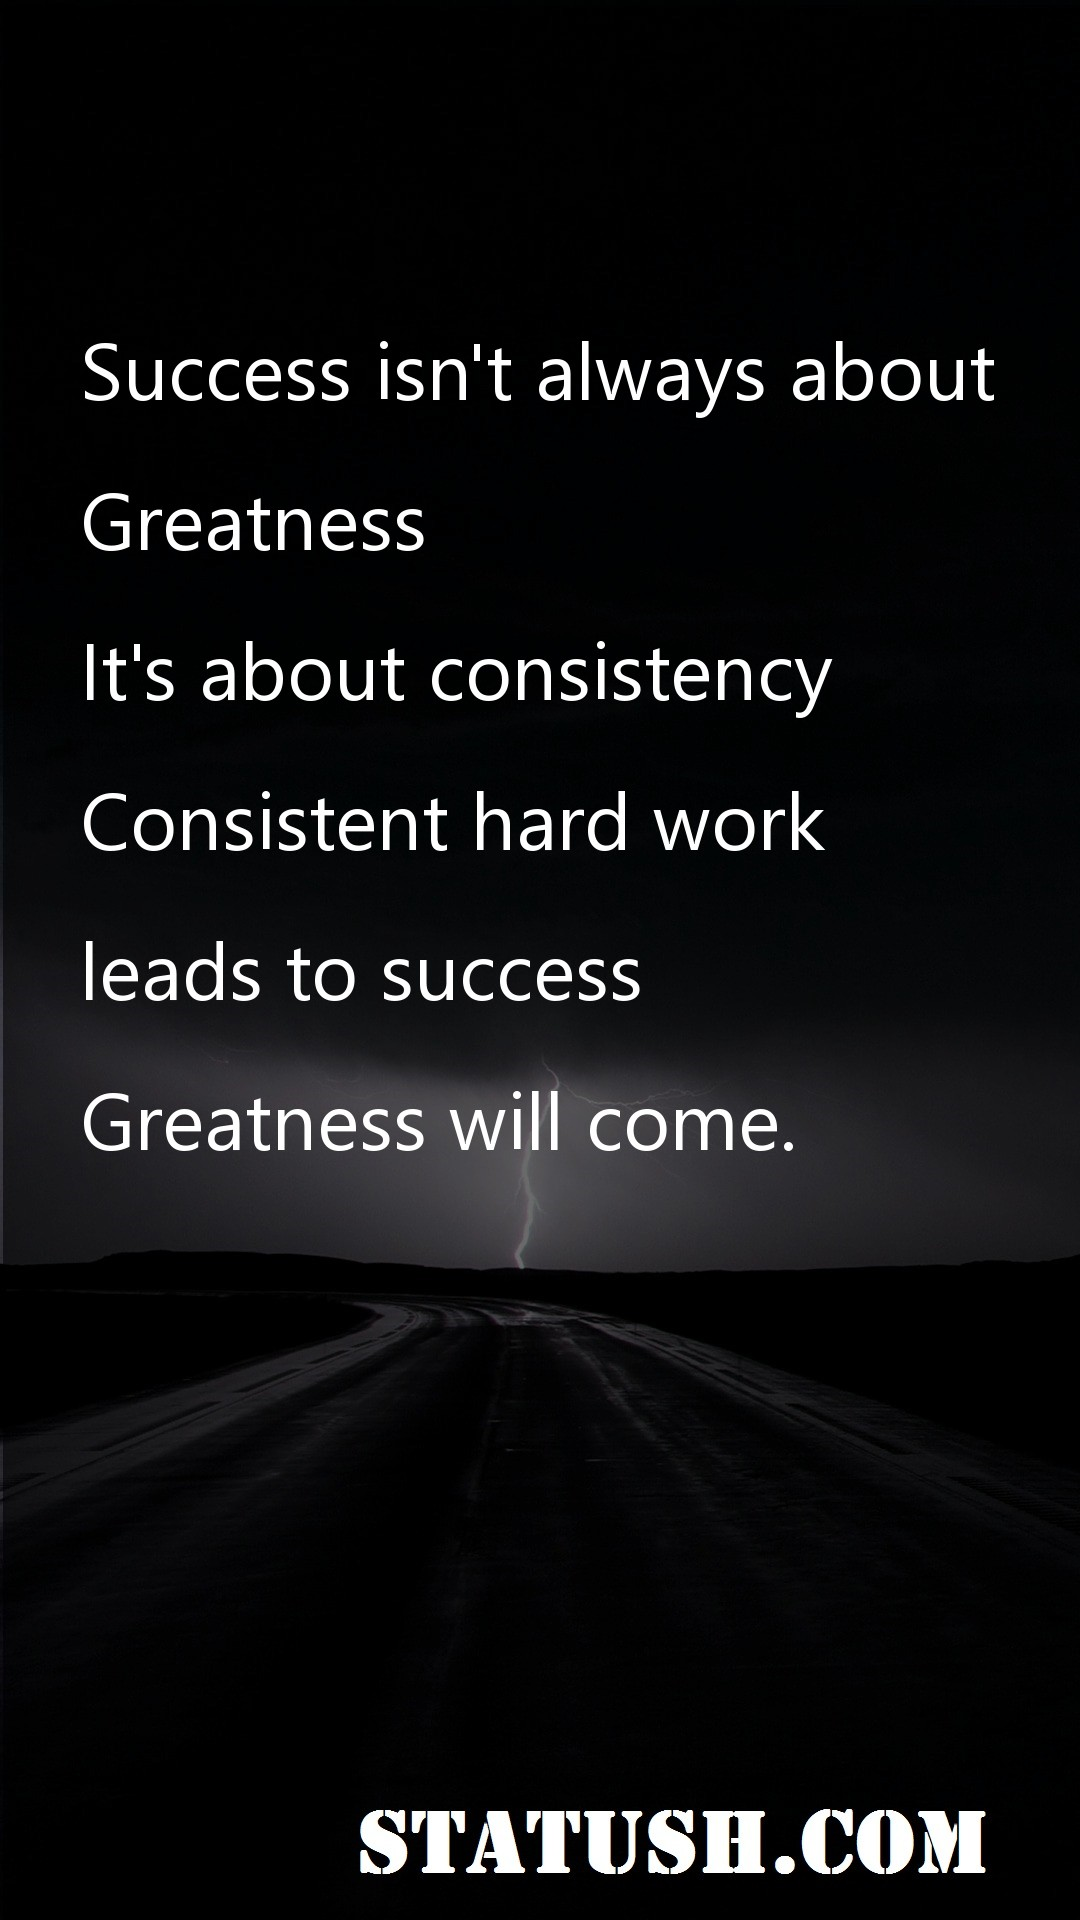 Success isnt always about greatness